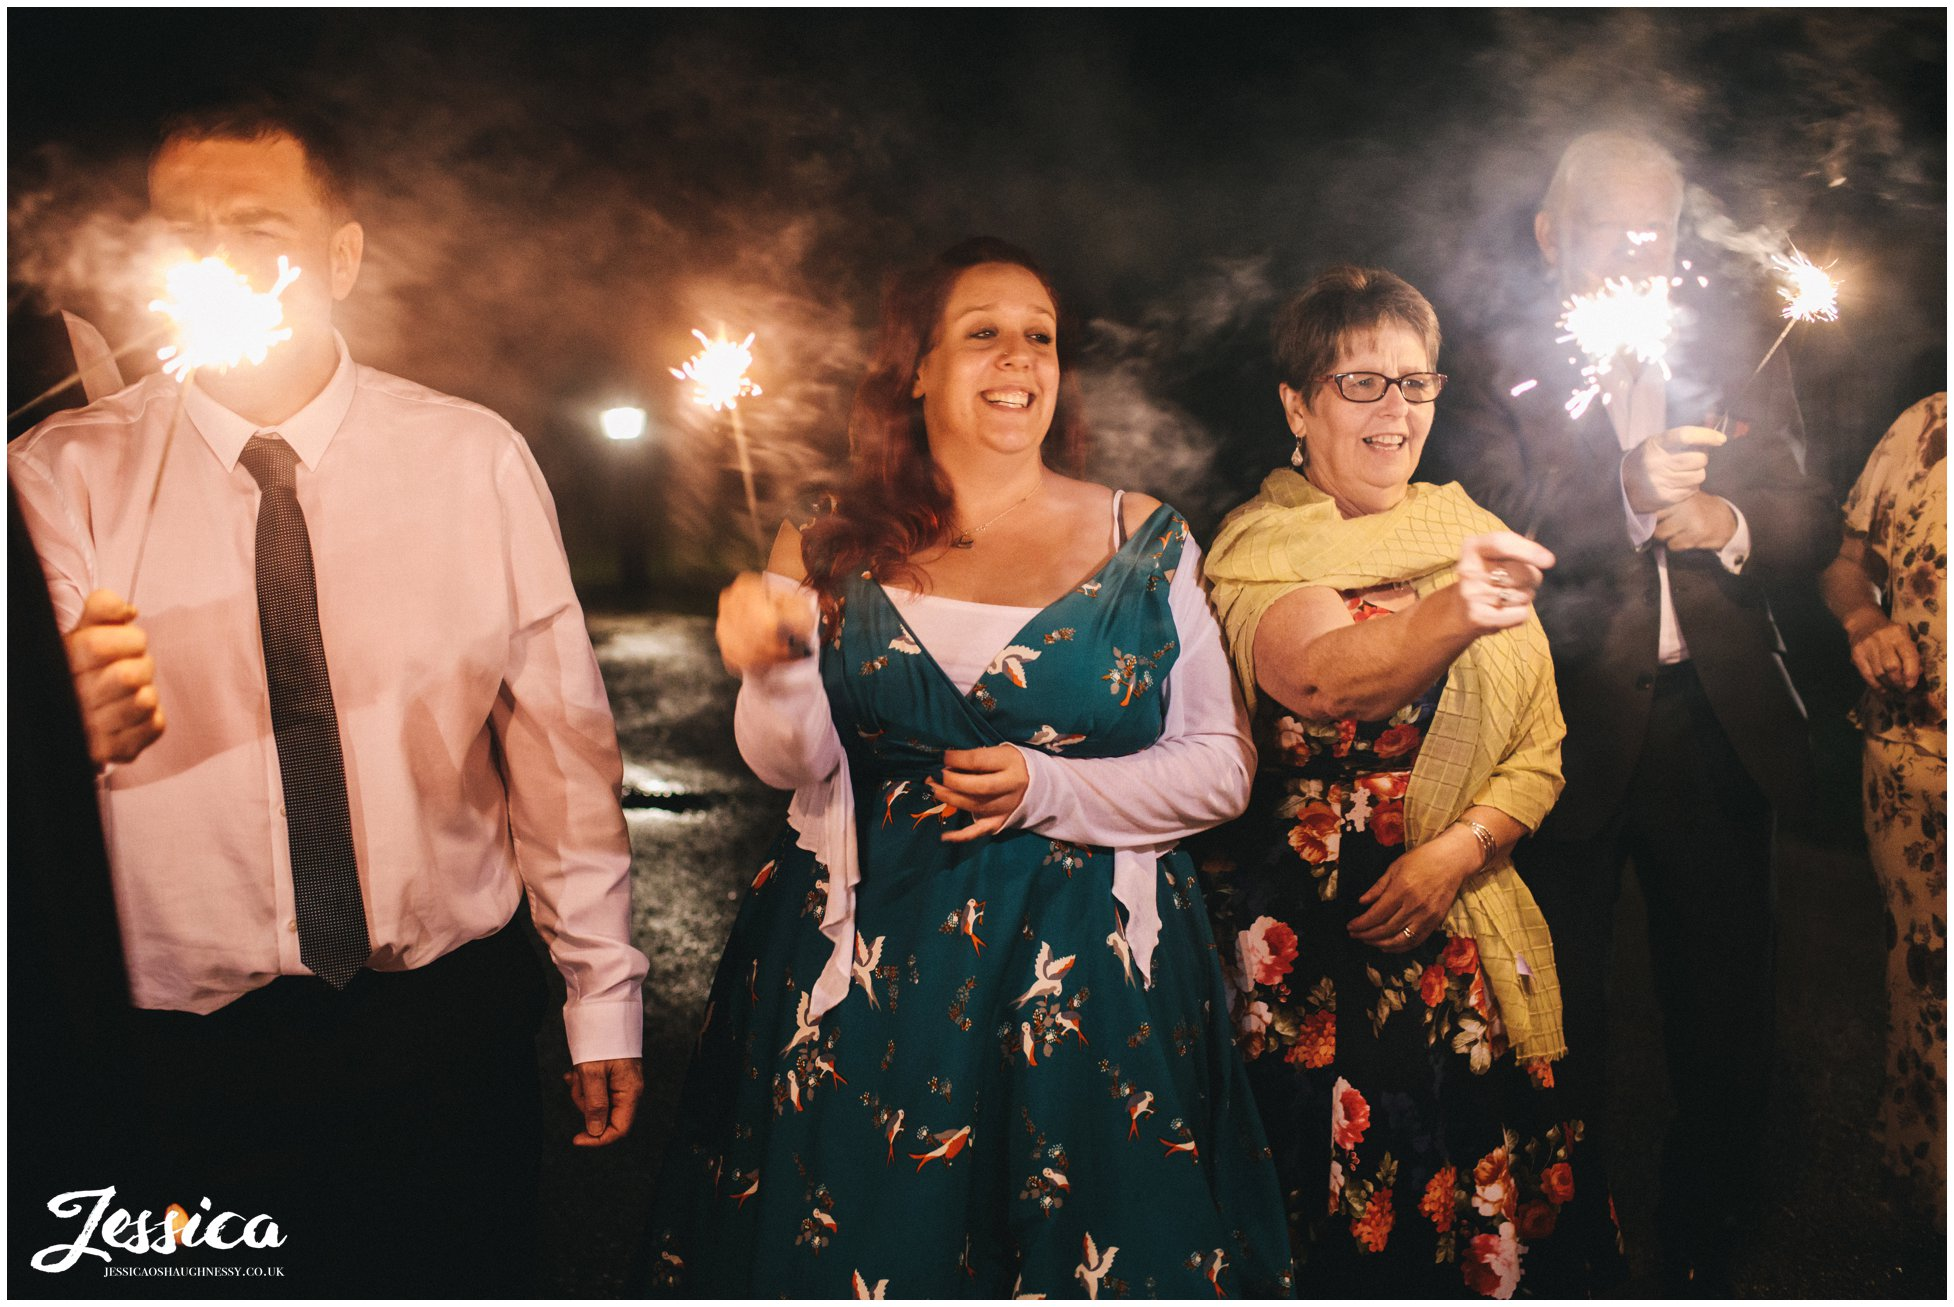 guests hold sparklers to light bride and groom